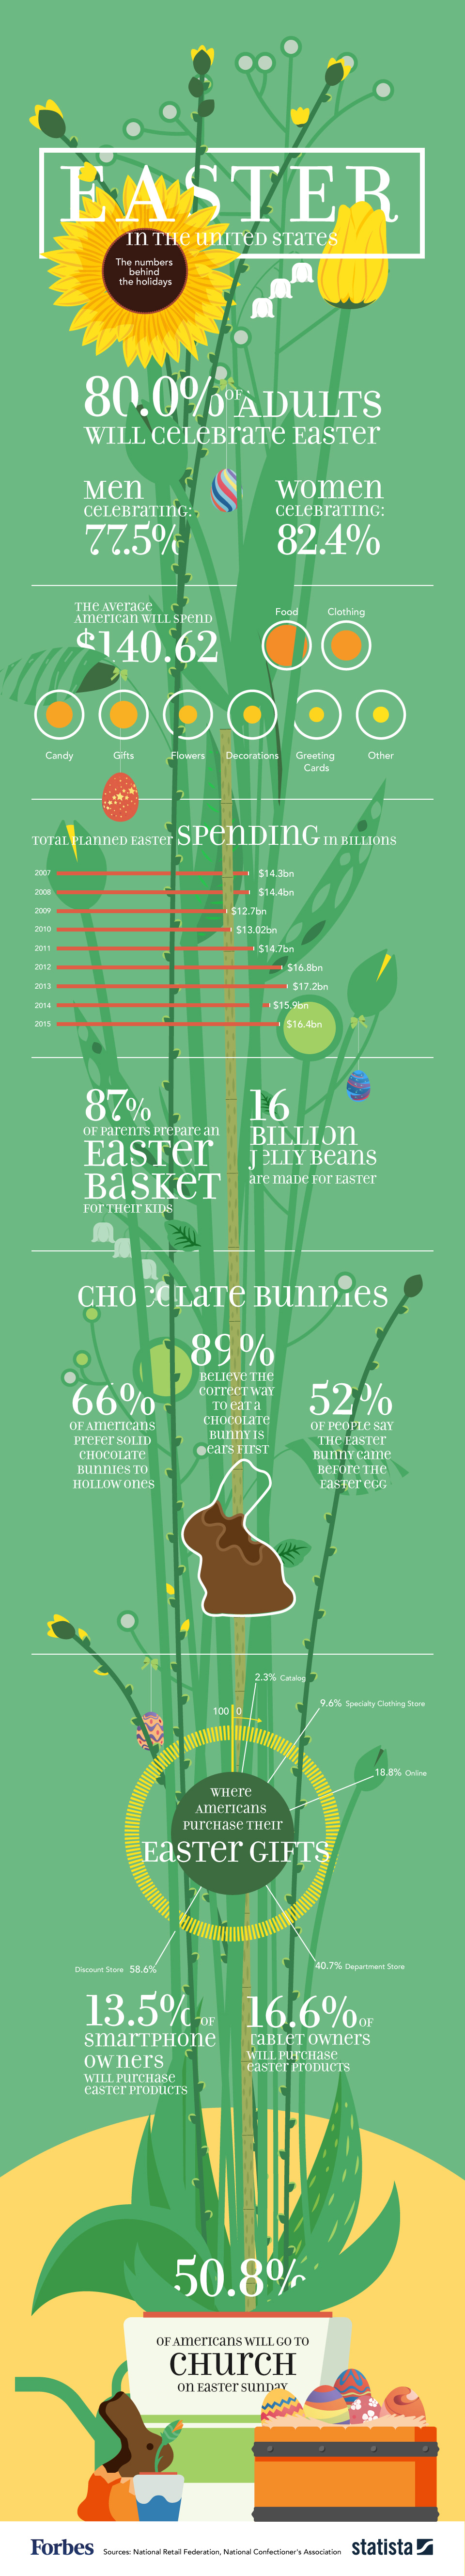 Easter Popular Holiday in America